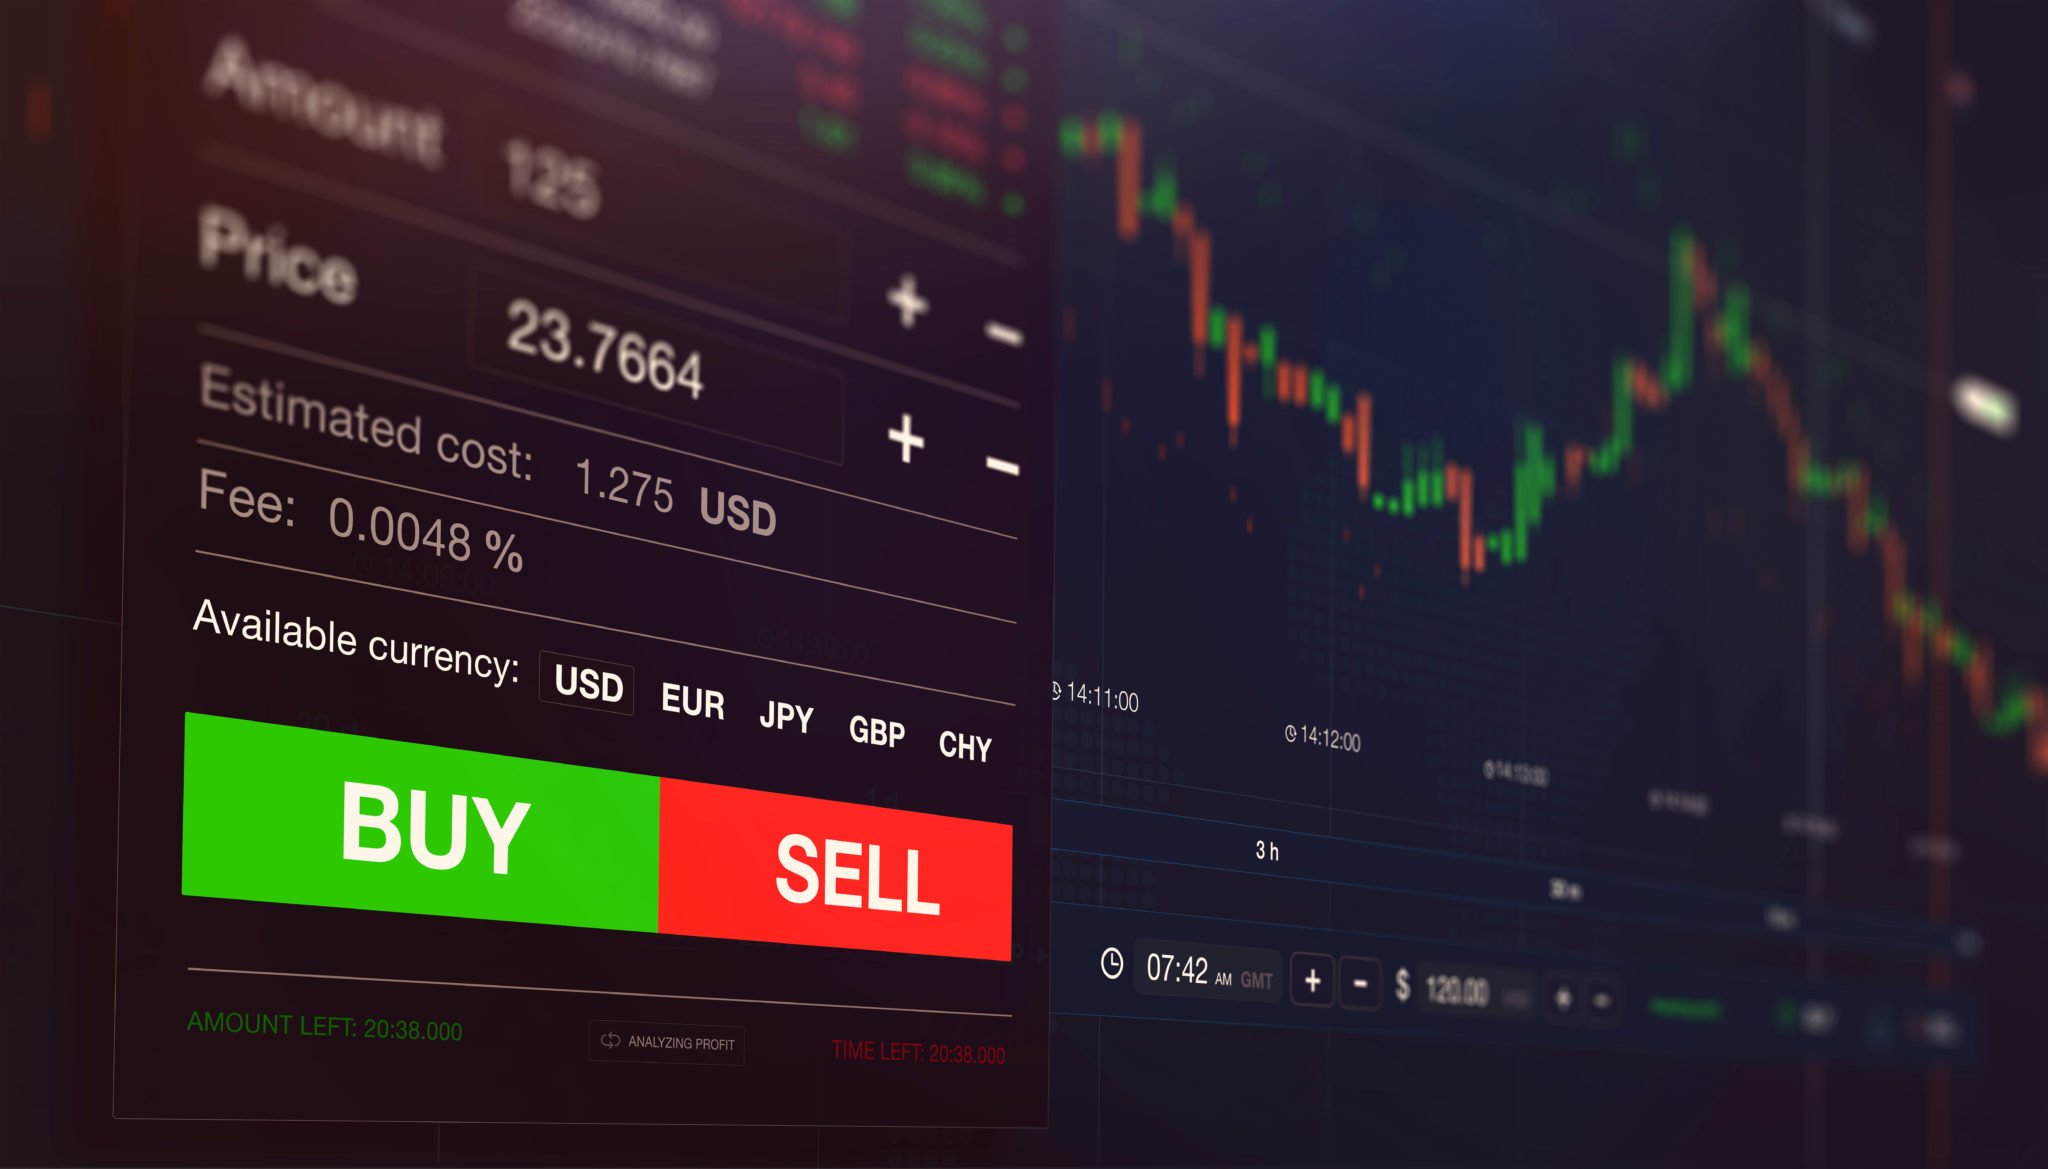 cryptocurrency-related stocks are growing